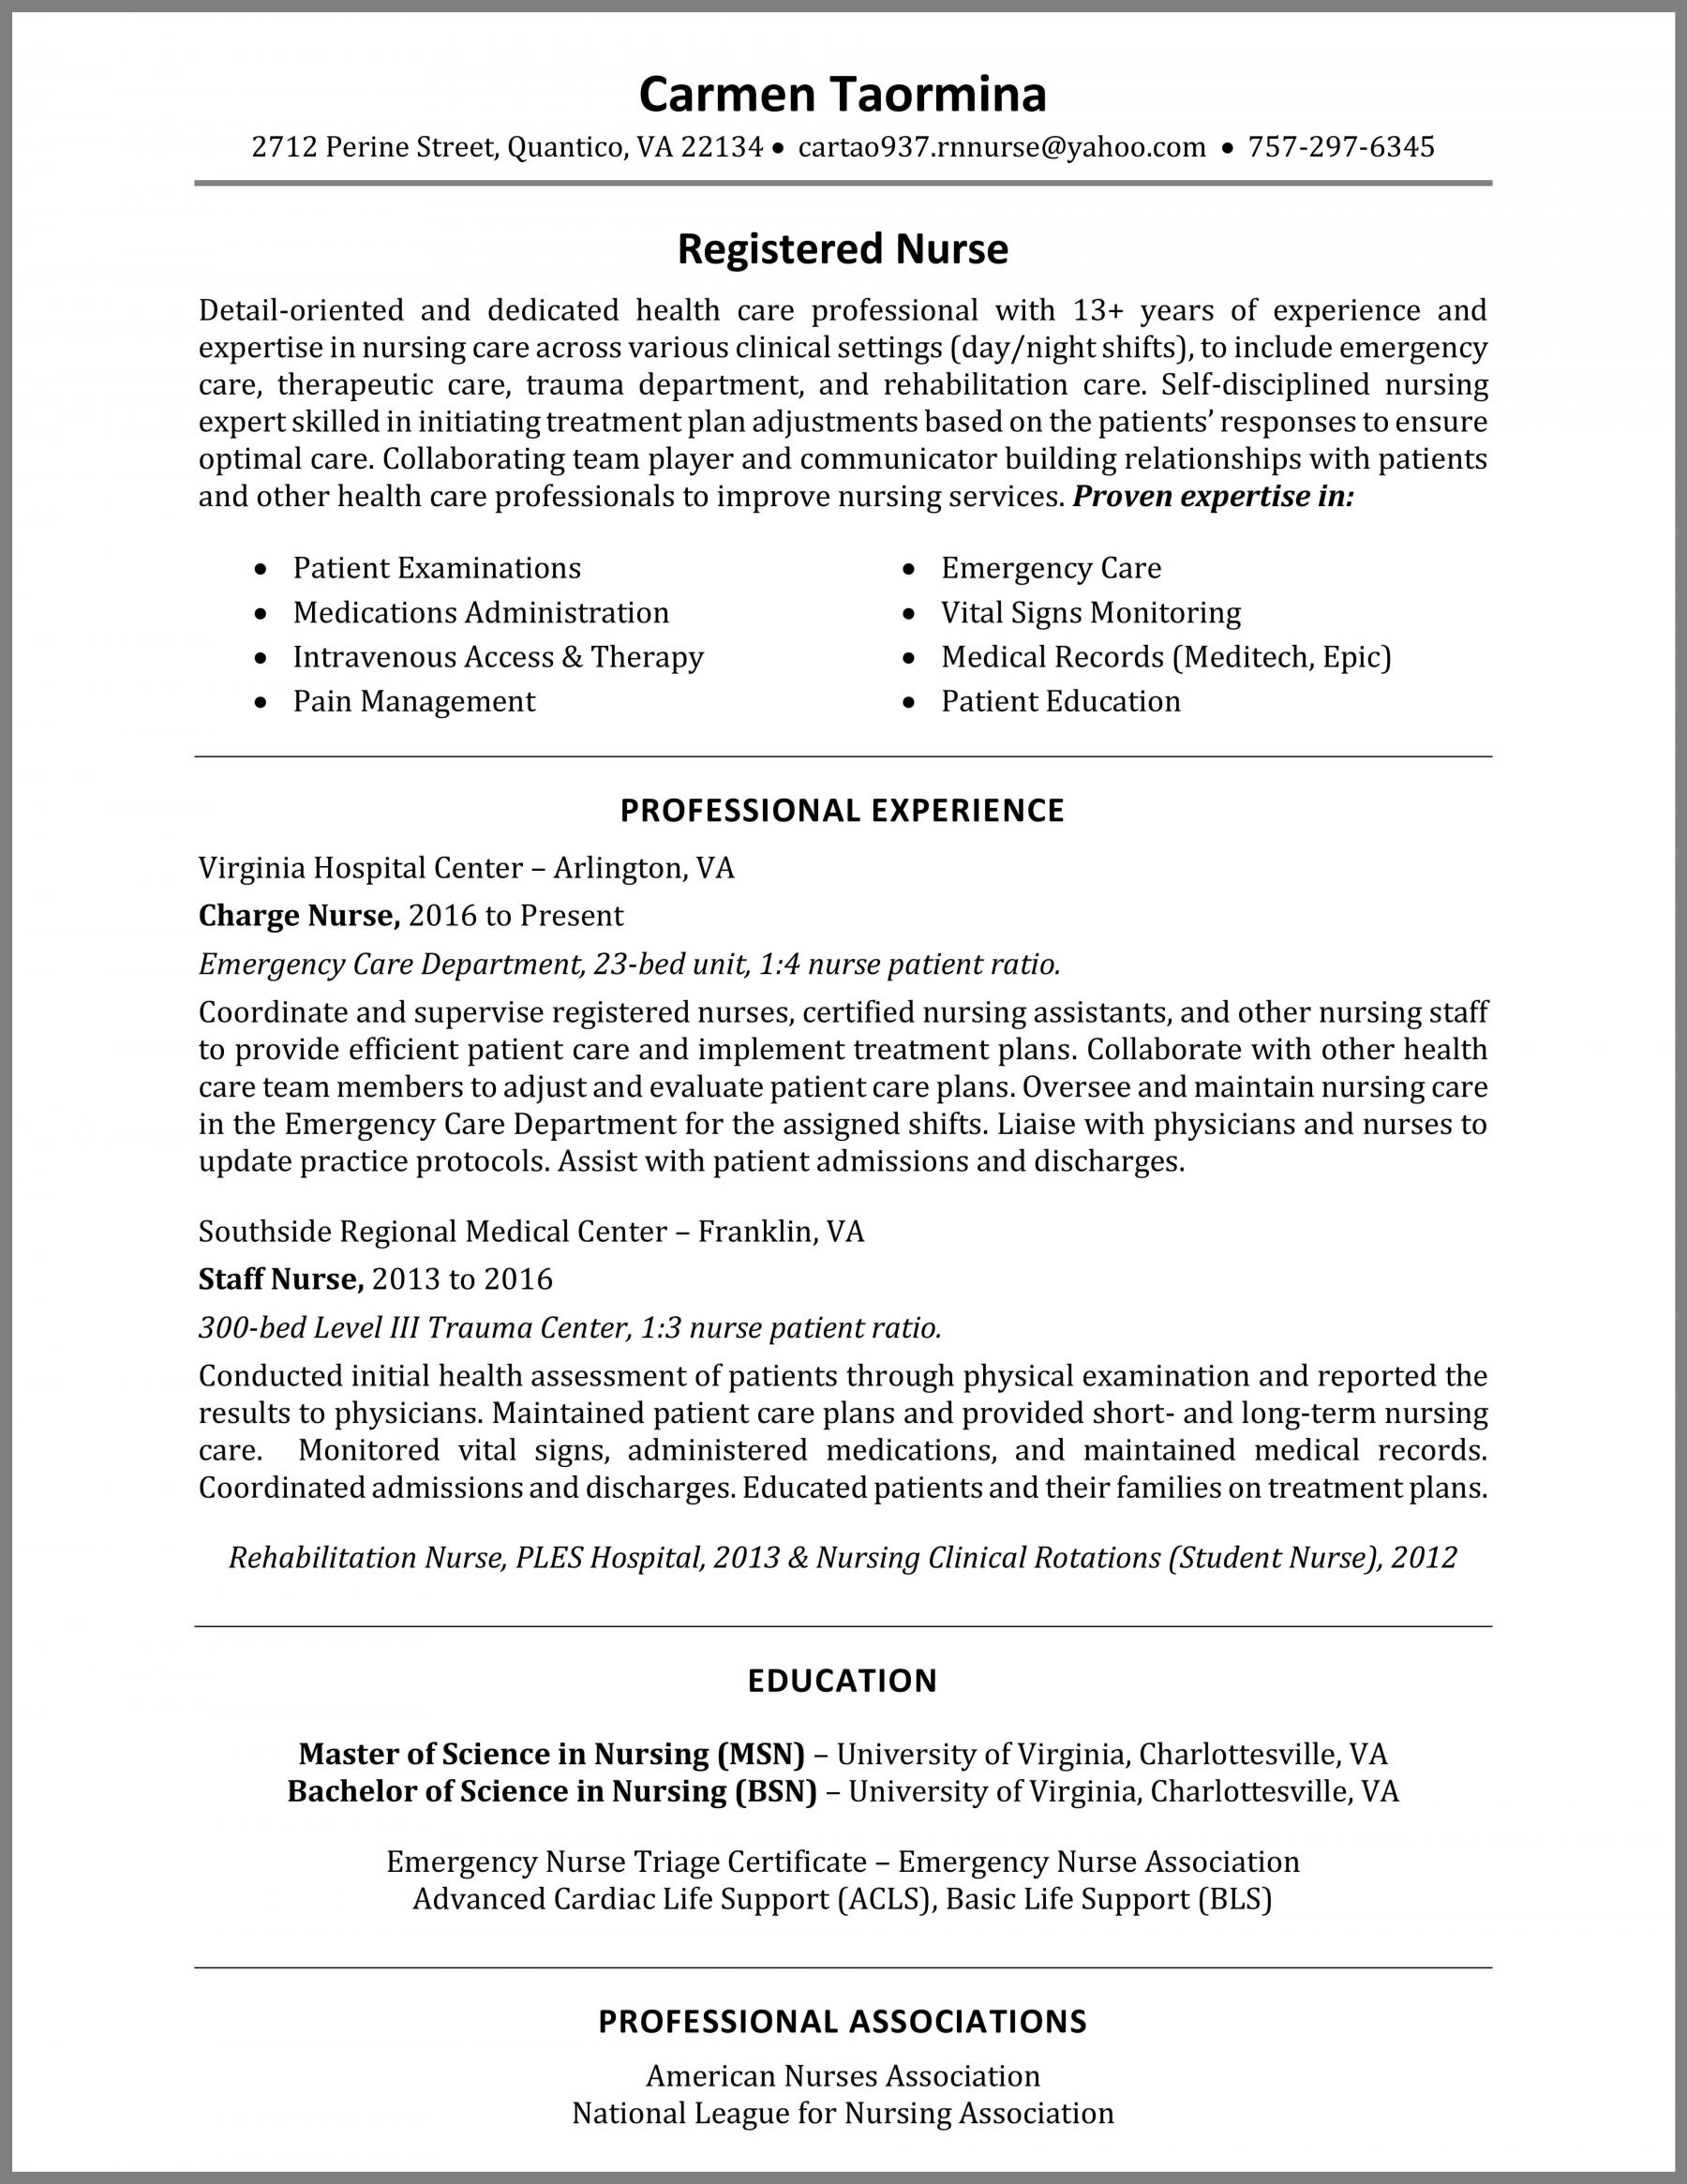 How to Write a Nurse Resume + Example